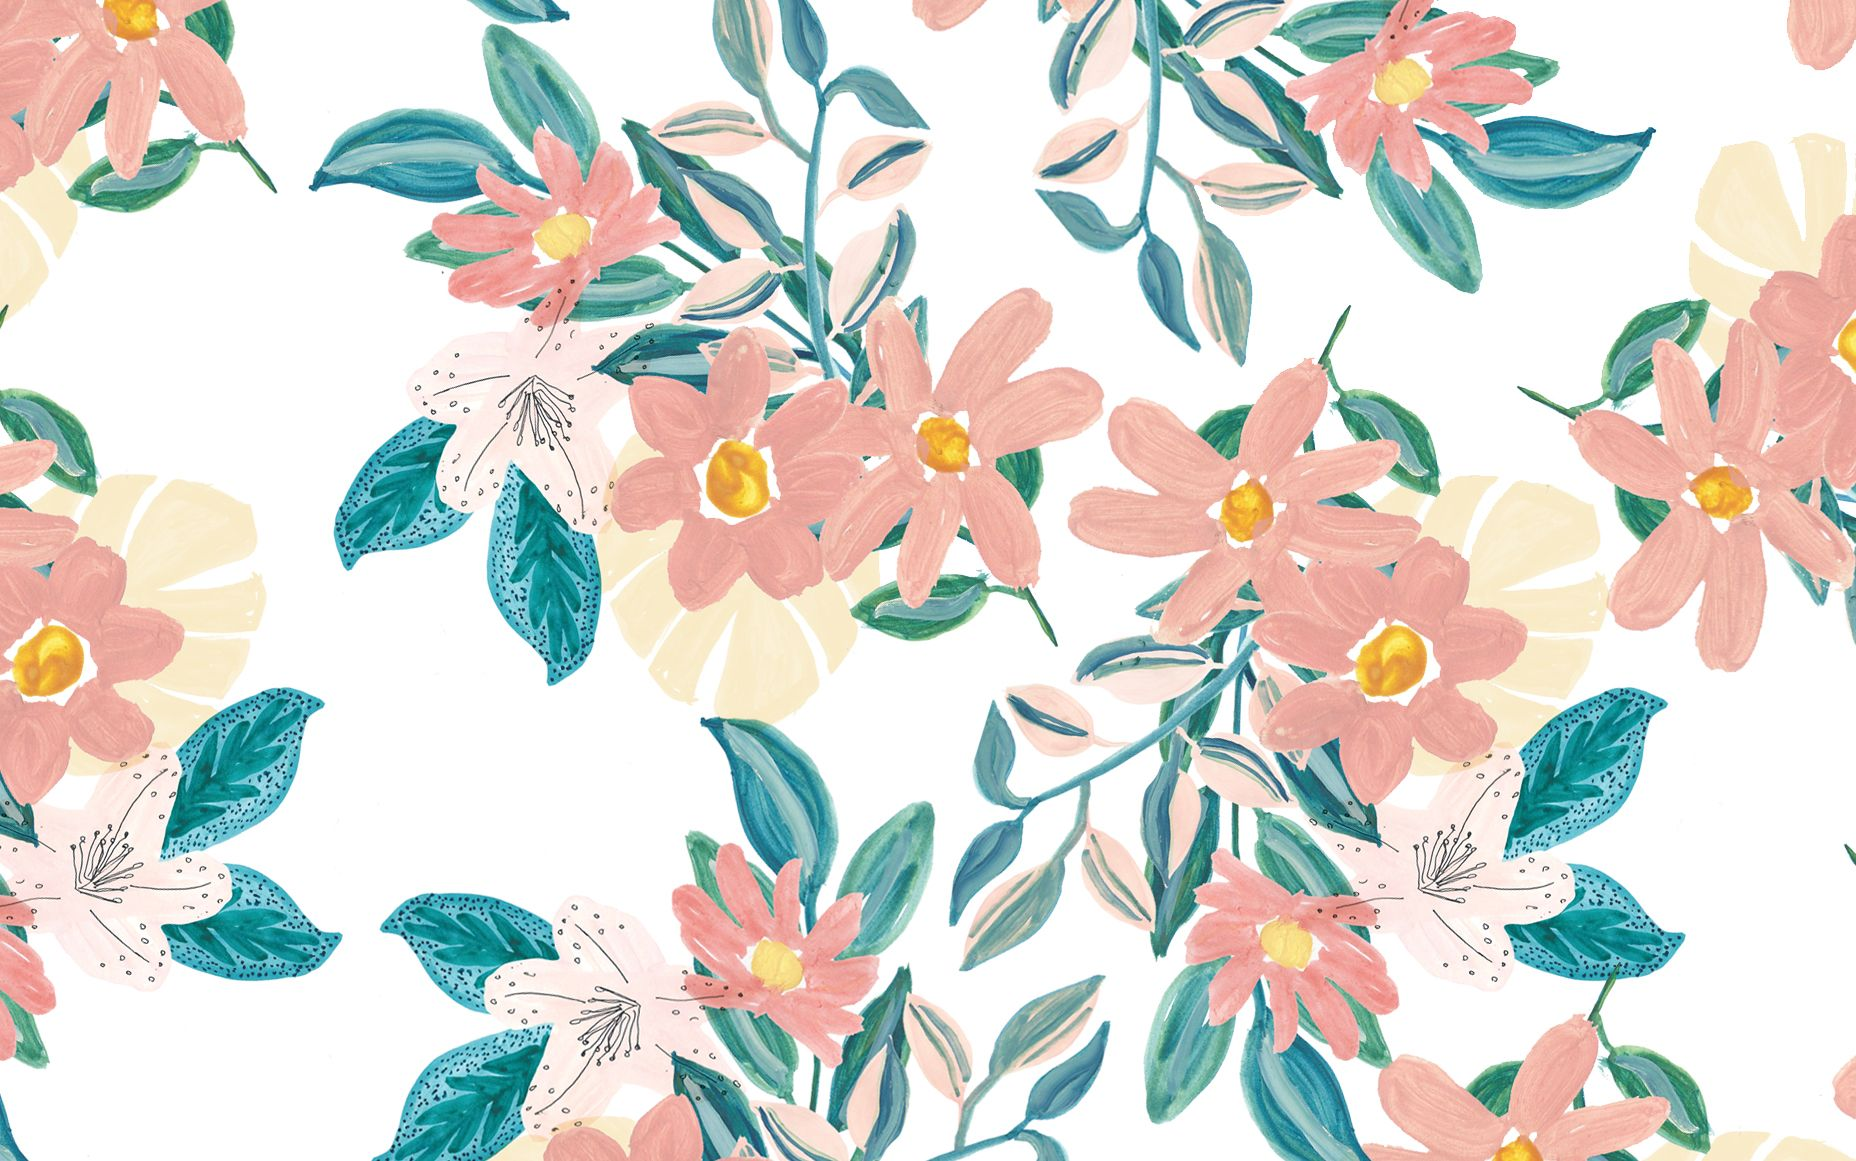 Free Download Spring Floral Desktop Wallpaper Designlovefest Art